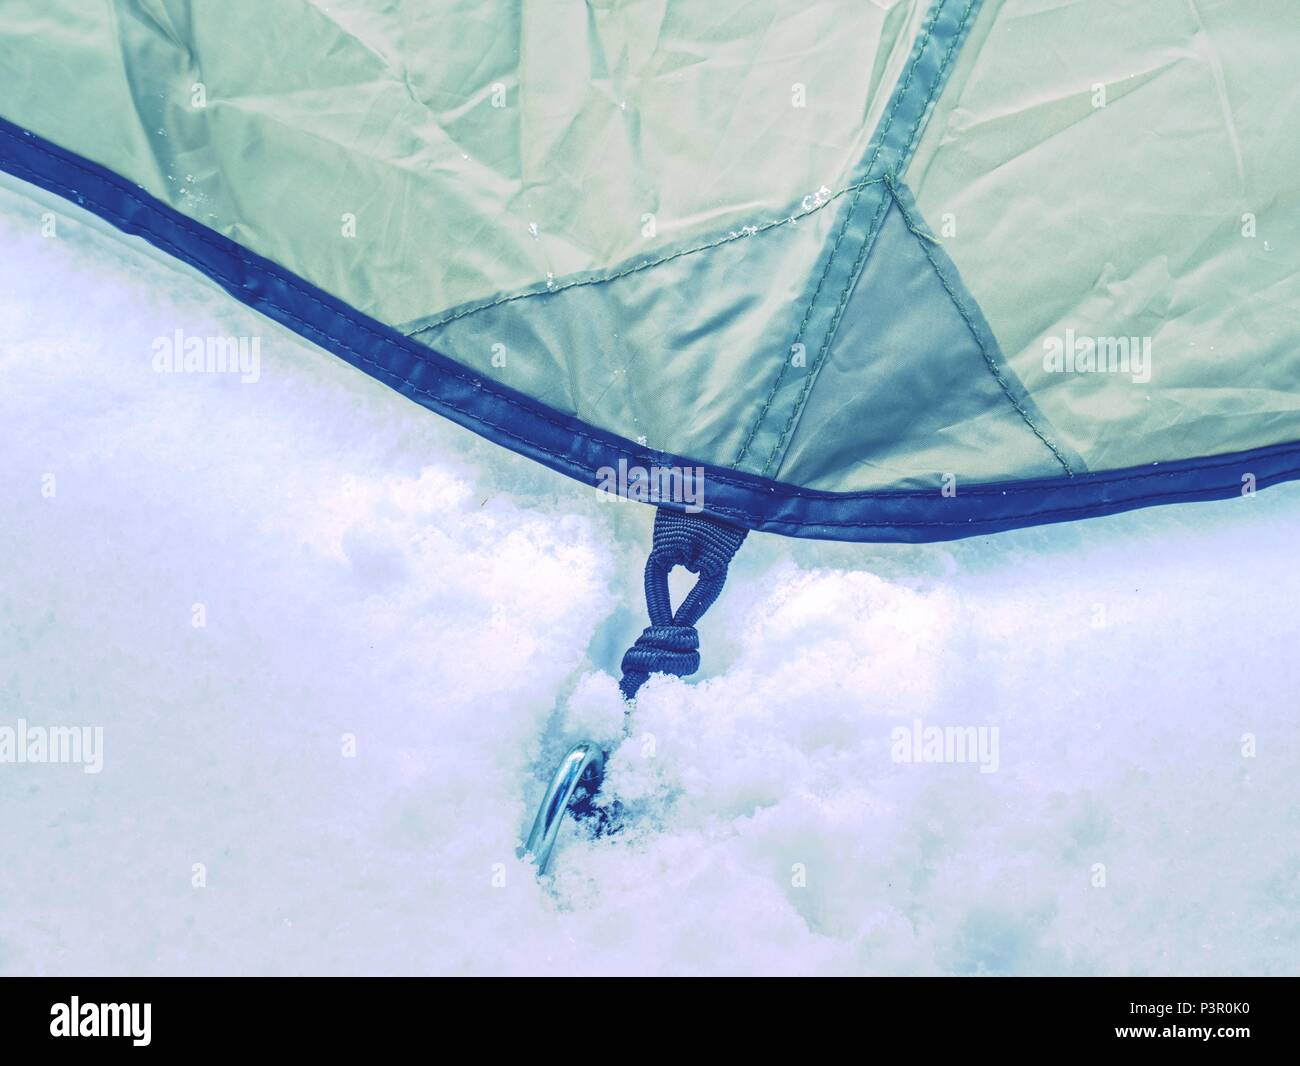 Detail of camping tent anchored in snow. Extreme winter trek. Aluminum Tent Poles and rainfly. - Stock Image